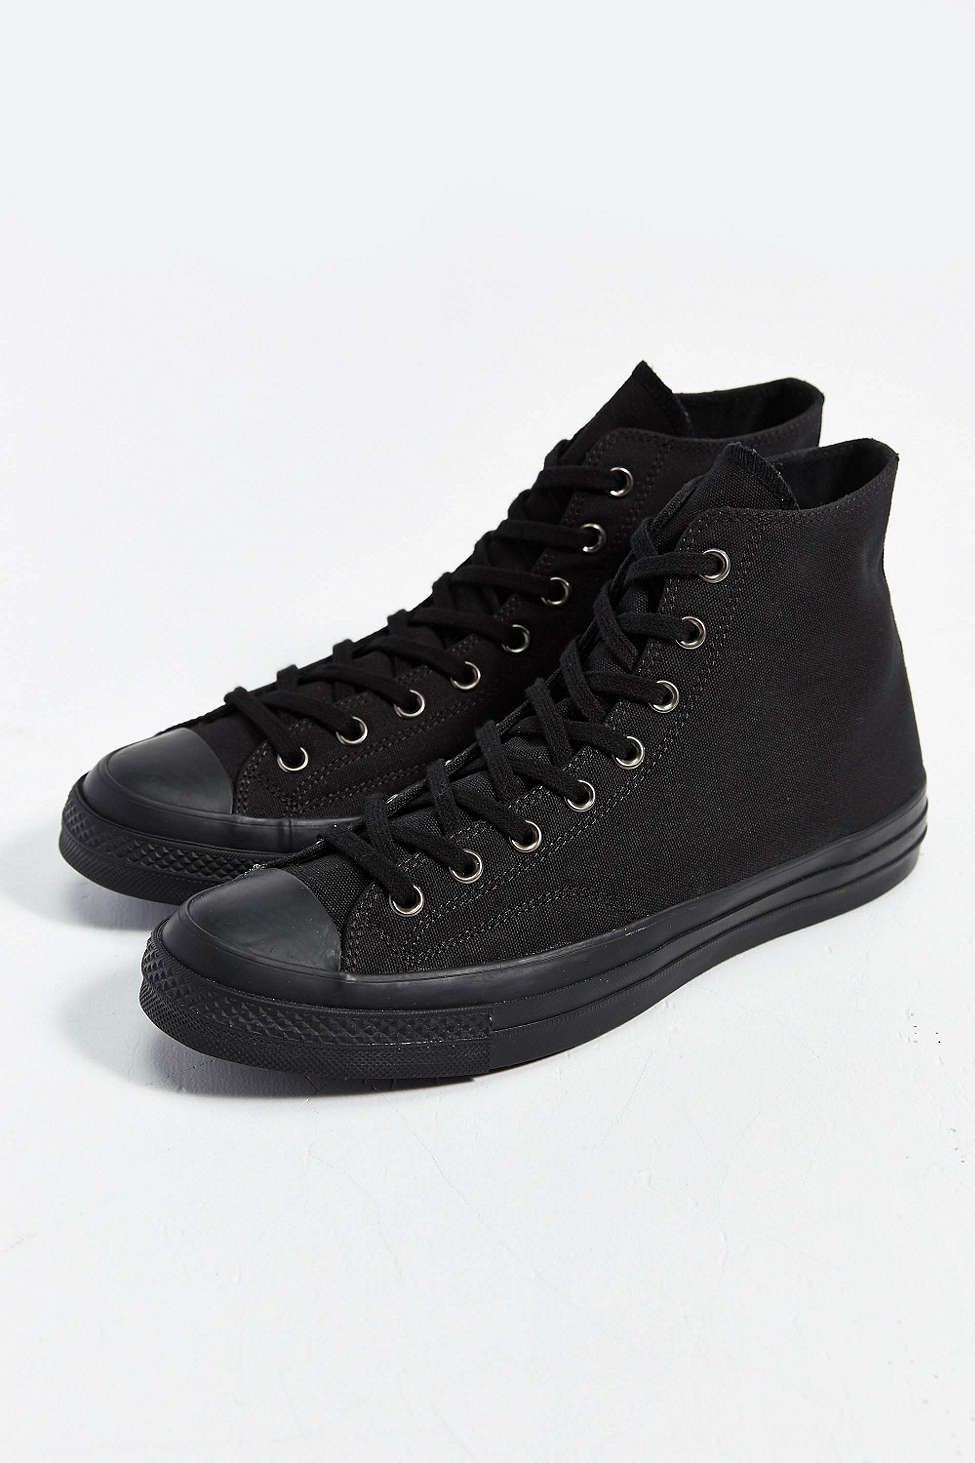 d3c9d09b6b41d7 Converse Chuck Taylor All Star 70s Mono High-Top Sneaker in 2019 ...